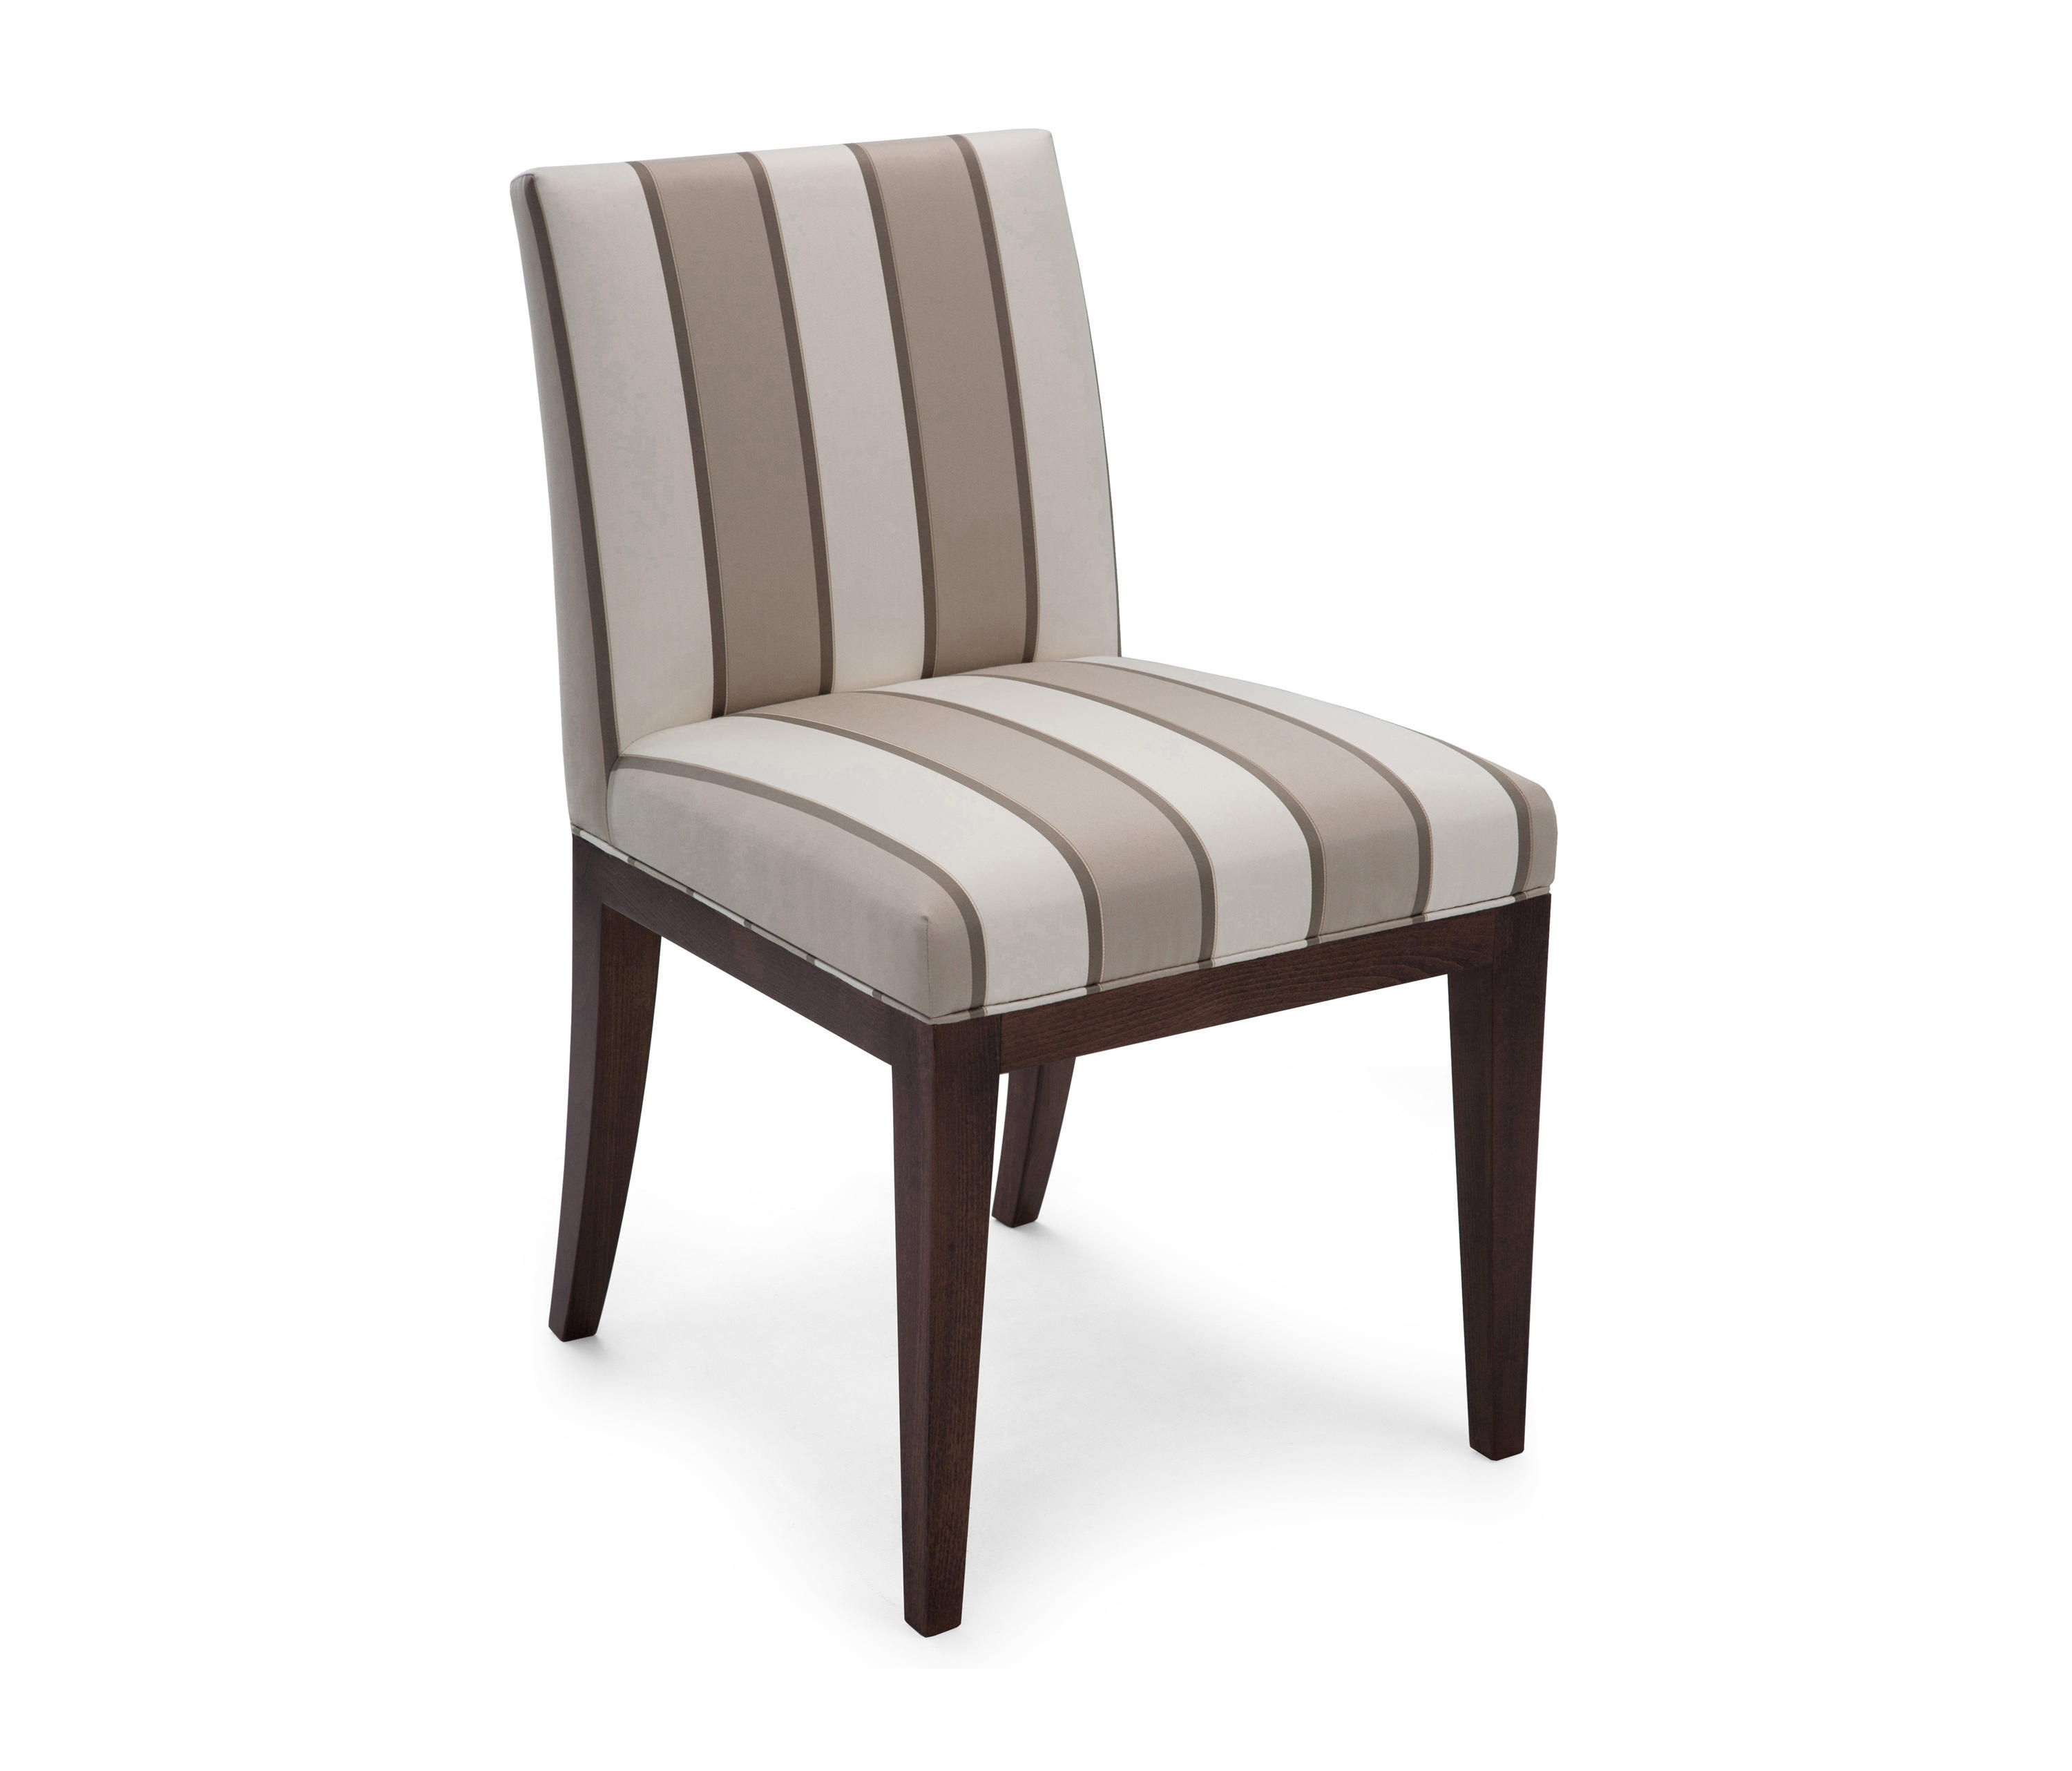 Byron Dining Chair – Chairs From The Sofa & Chair Company Ltd In Most Up To Date Sofa Chairs (View 10 of 20)